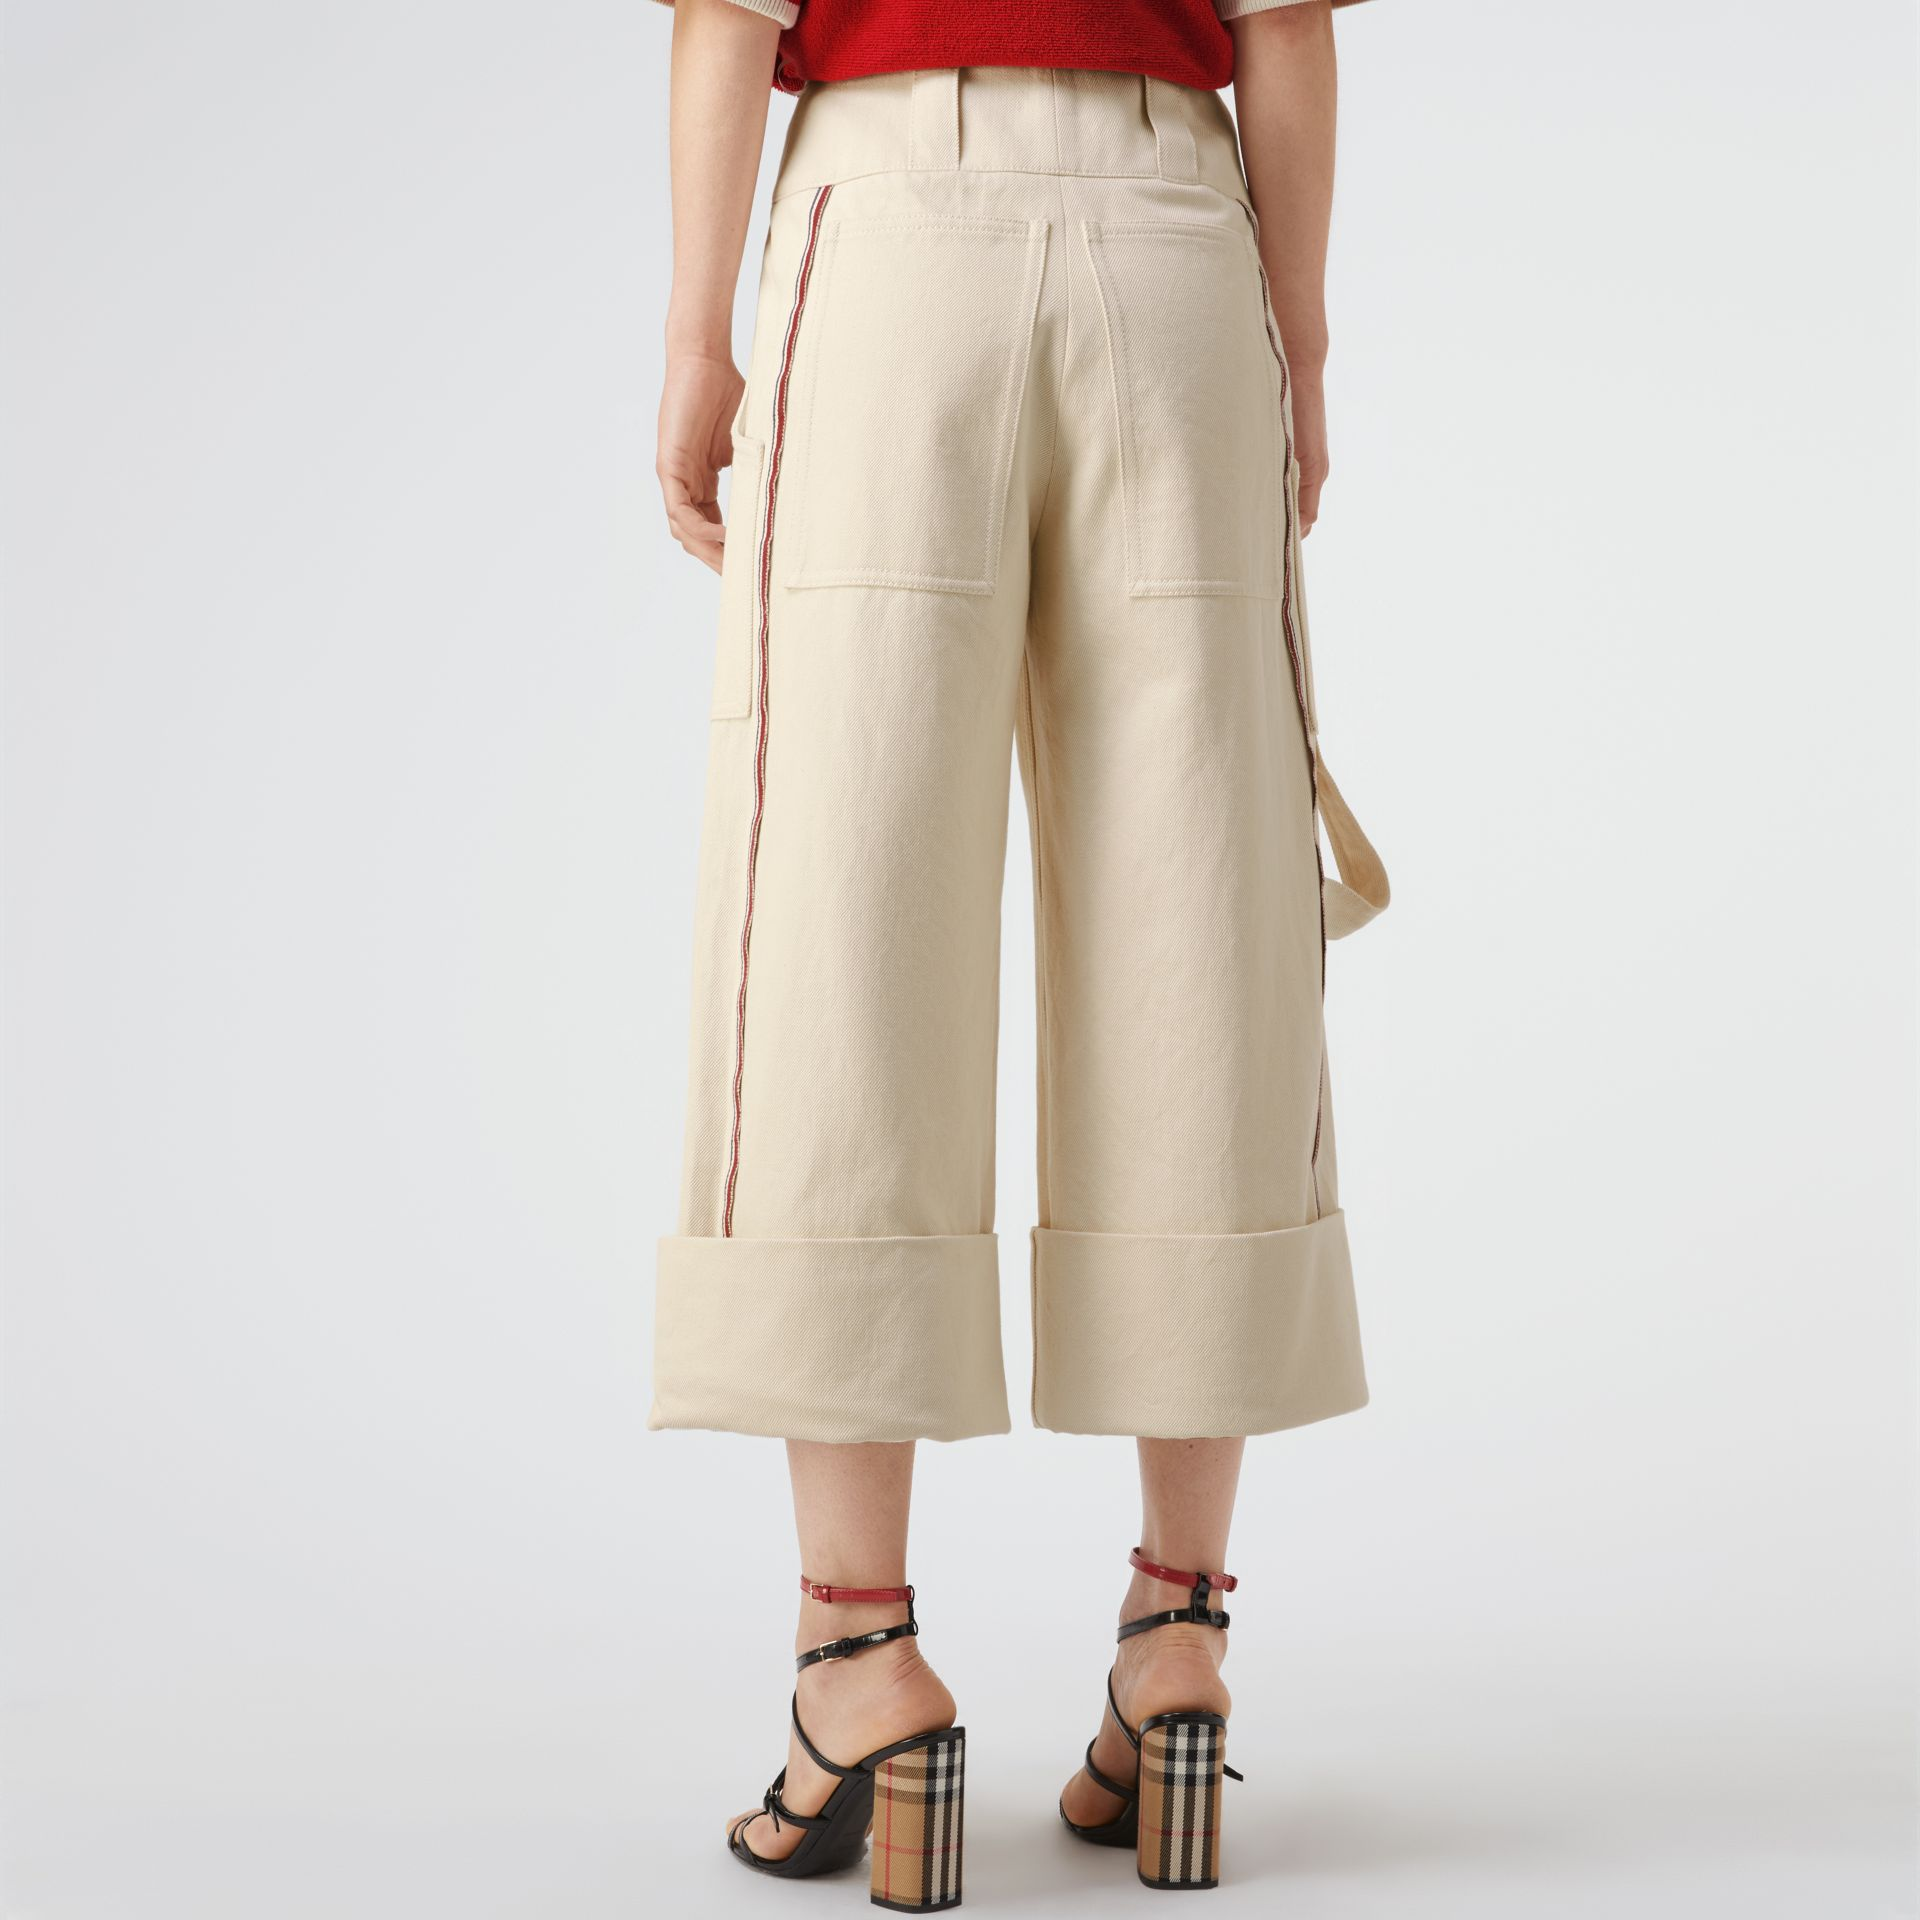 Pantalon ample 7/8 en coton à rayures (Blanc Naturel) - Femme | Burberry Canada - photo de la galerie 2